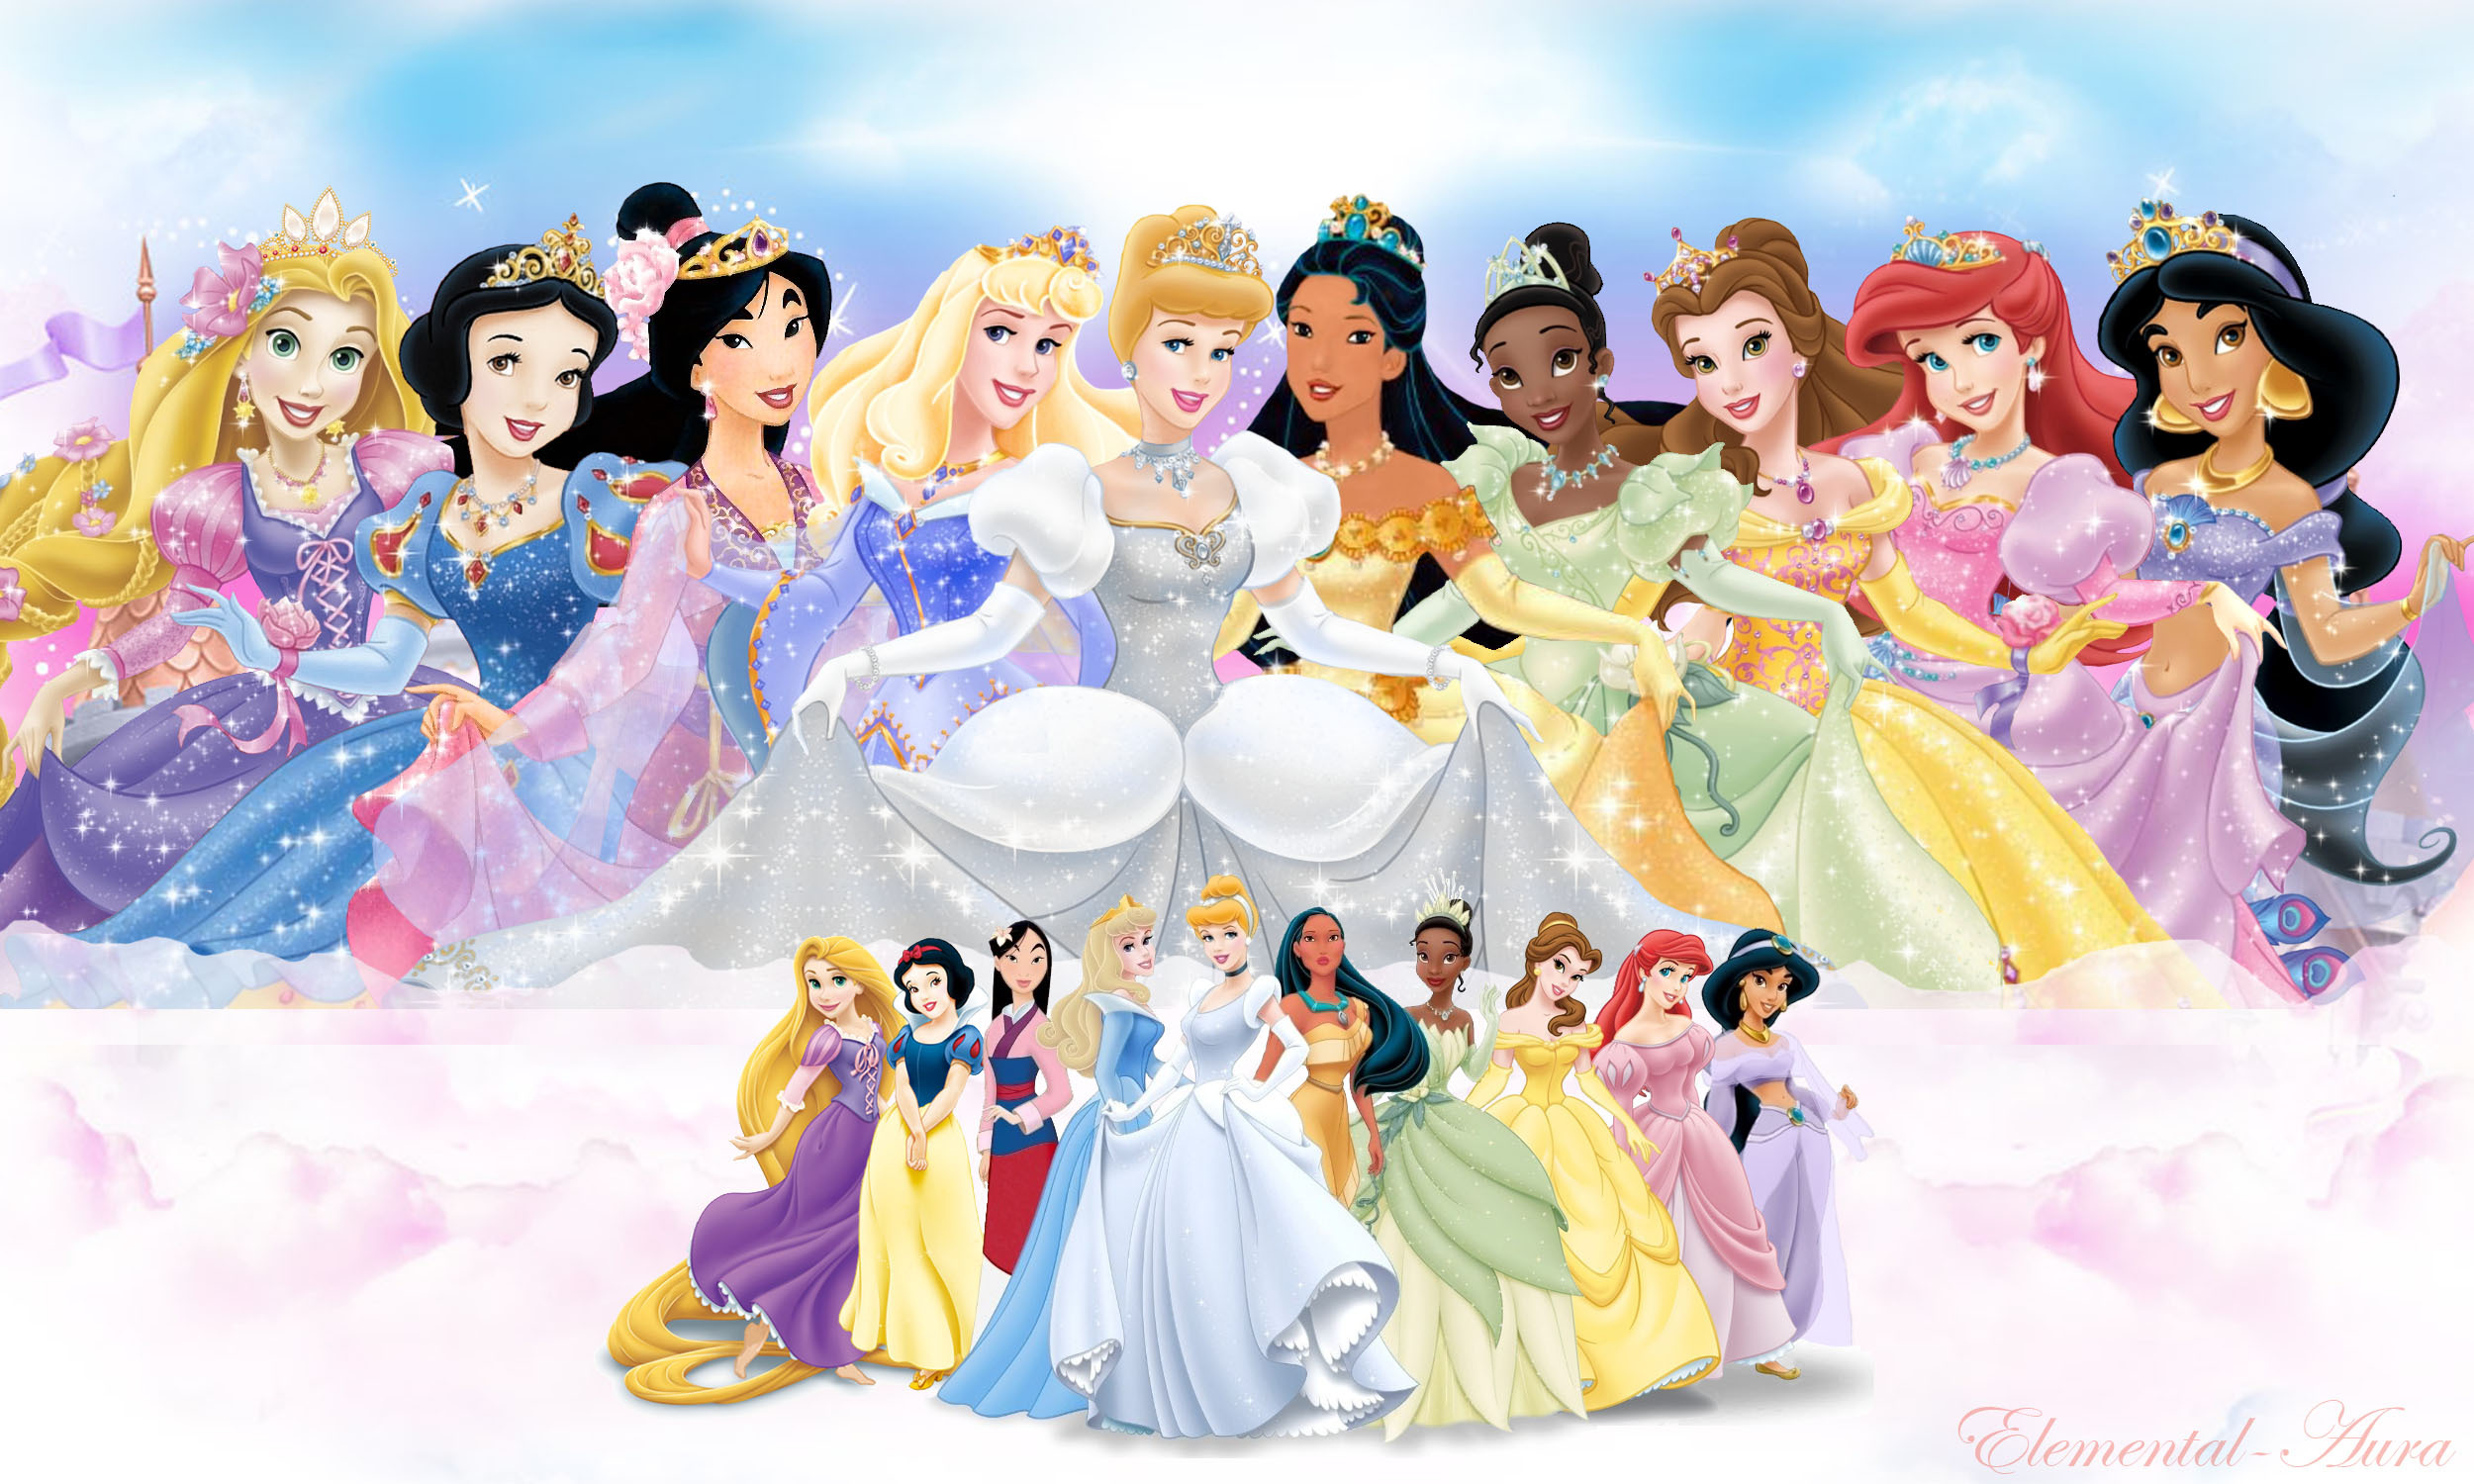 Disney Characters Wallpaper HD wallpaper background 2500x1500